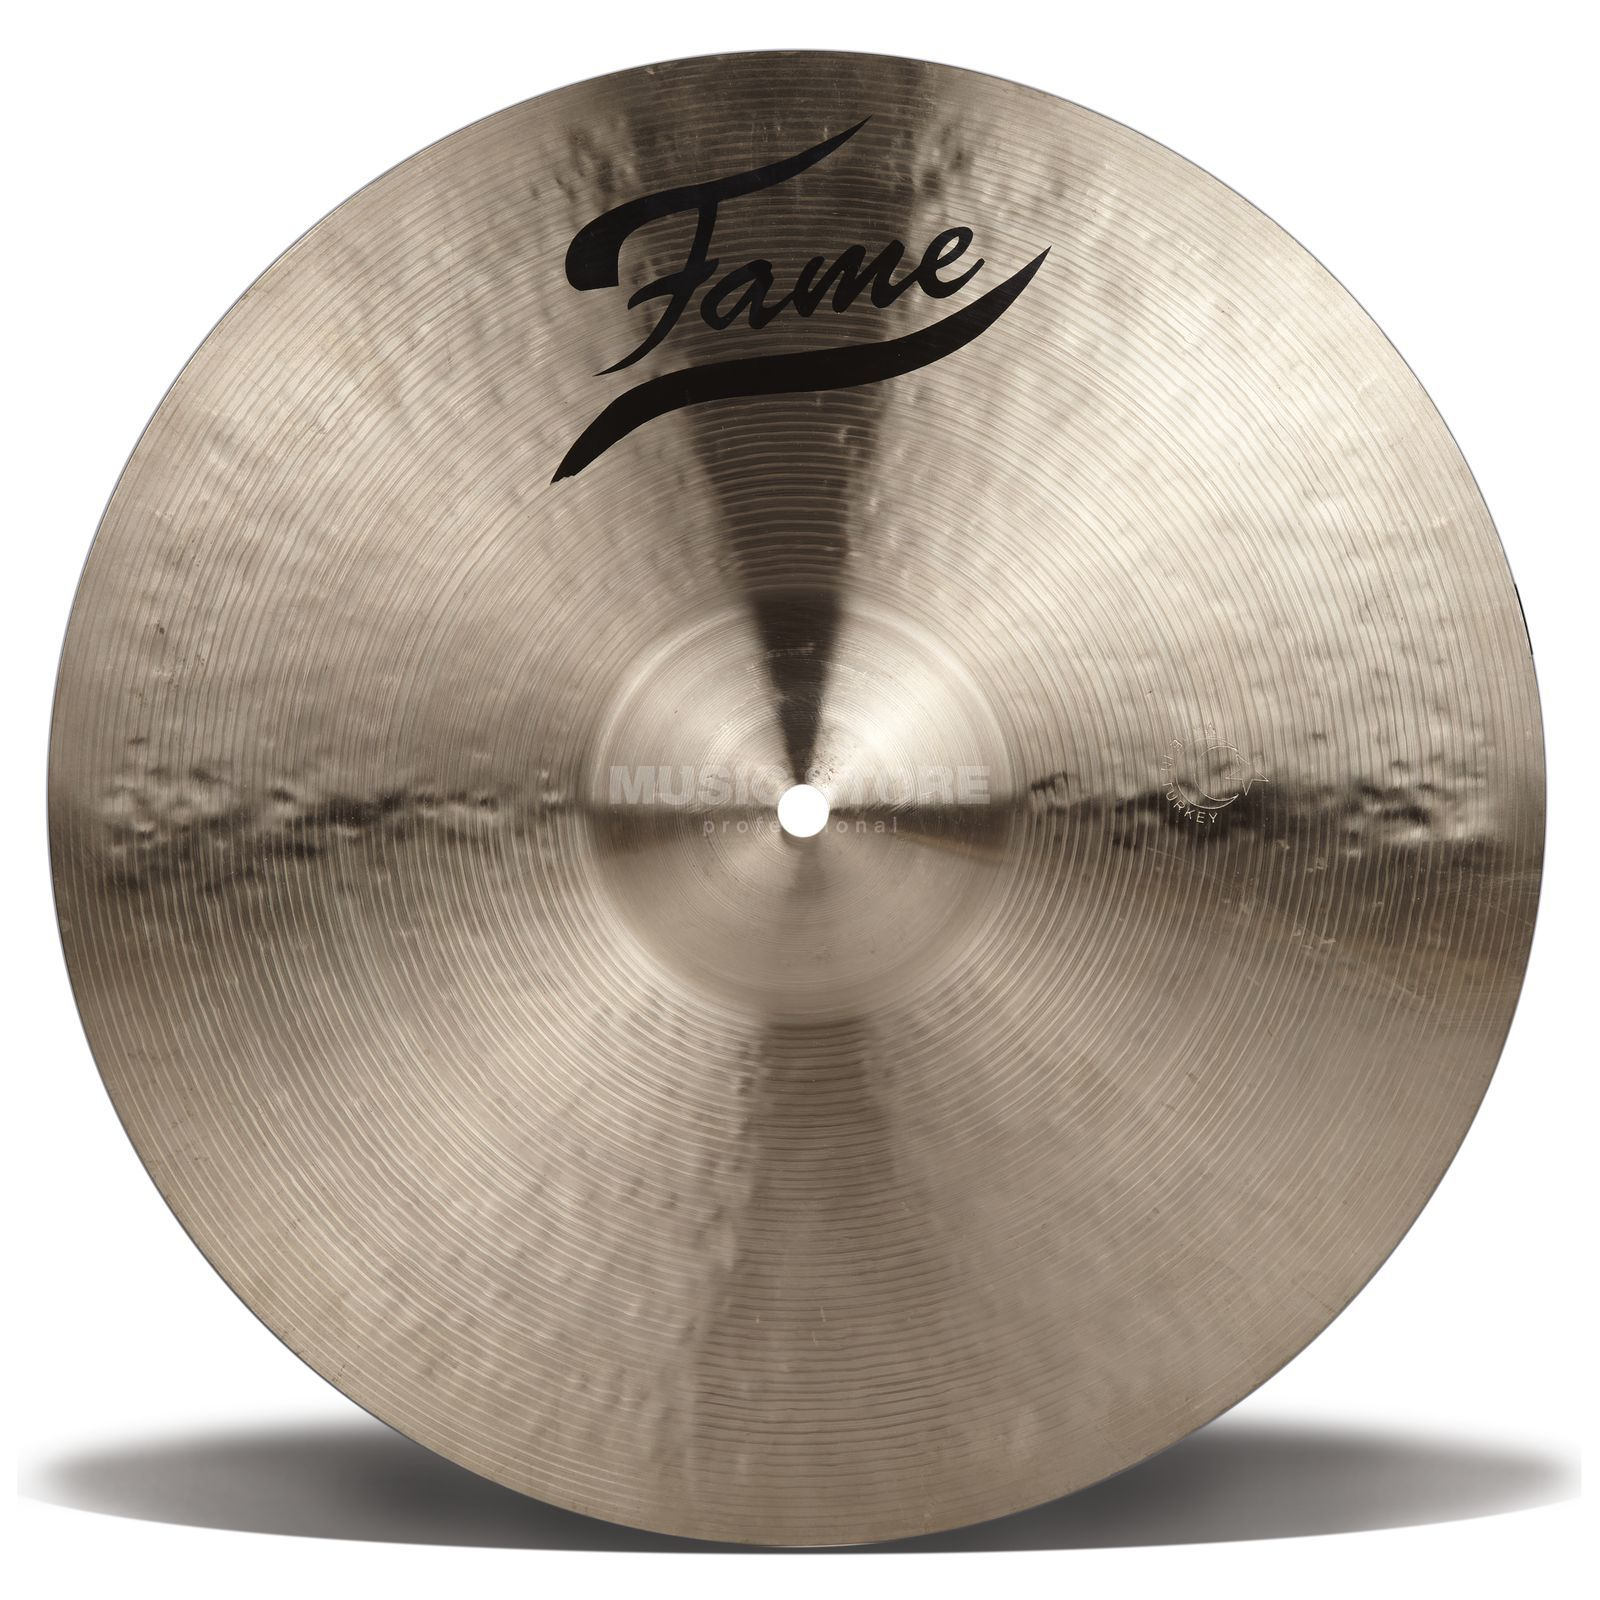 "Fame Masters B20 Thin Crash 16"", Natural Finish Product Image"